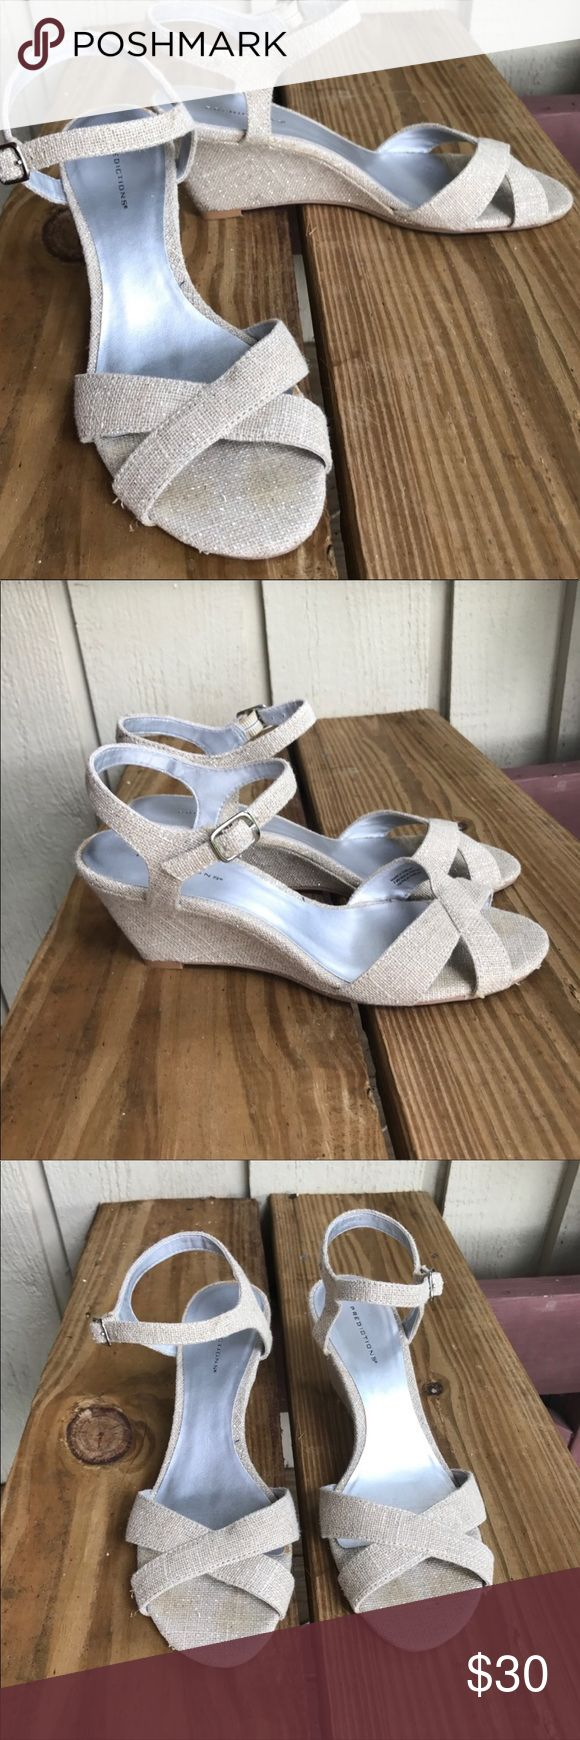 "Glitter cream wedge sandals Sz 9 predictions Glitter cream wedge heel shoes. Predictions brand. Size 9. Worn only once or twice. GUC. Little dirt mark at left heel. Wedge measures approximately 3."" Shoes Sandals"